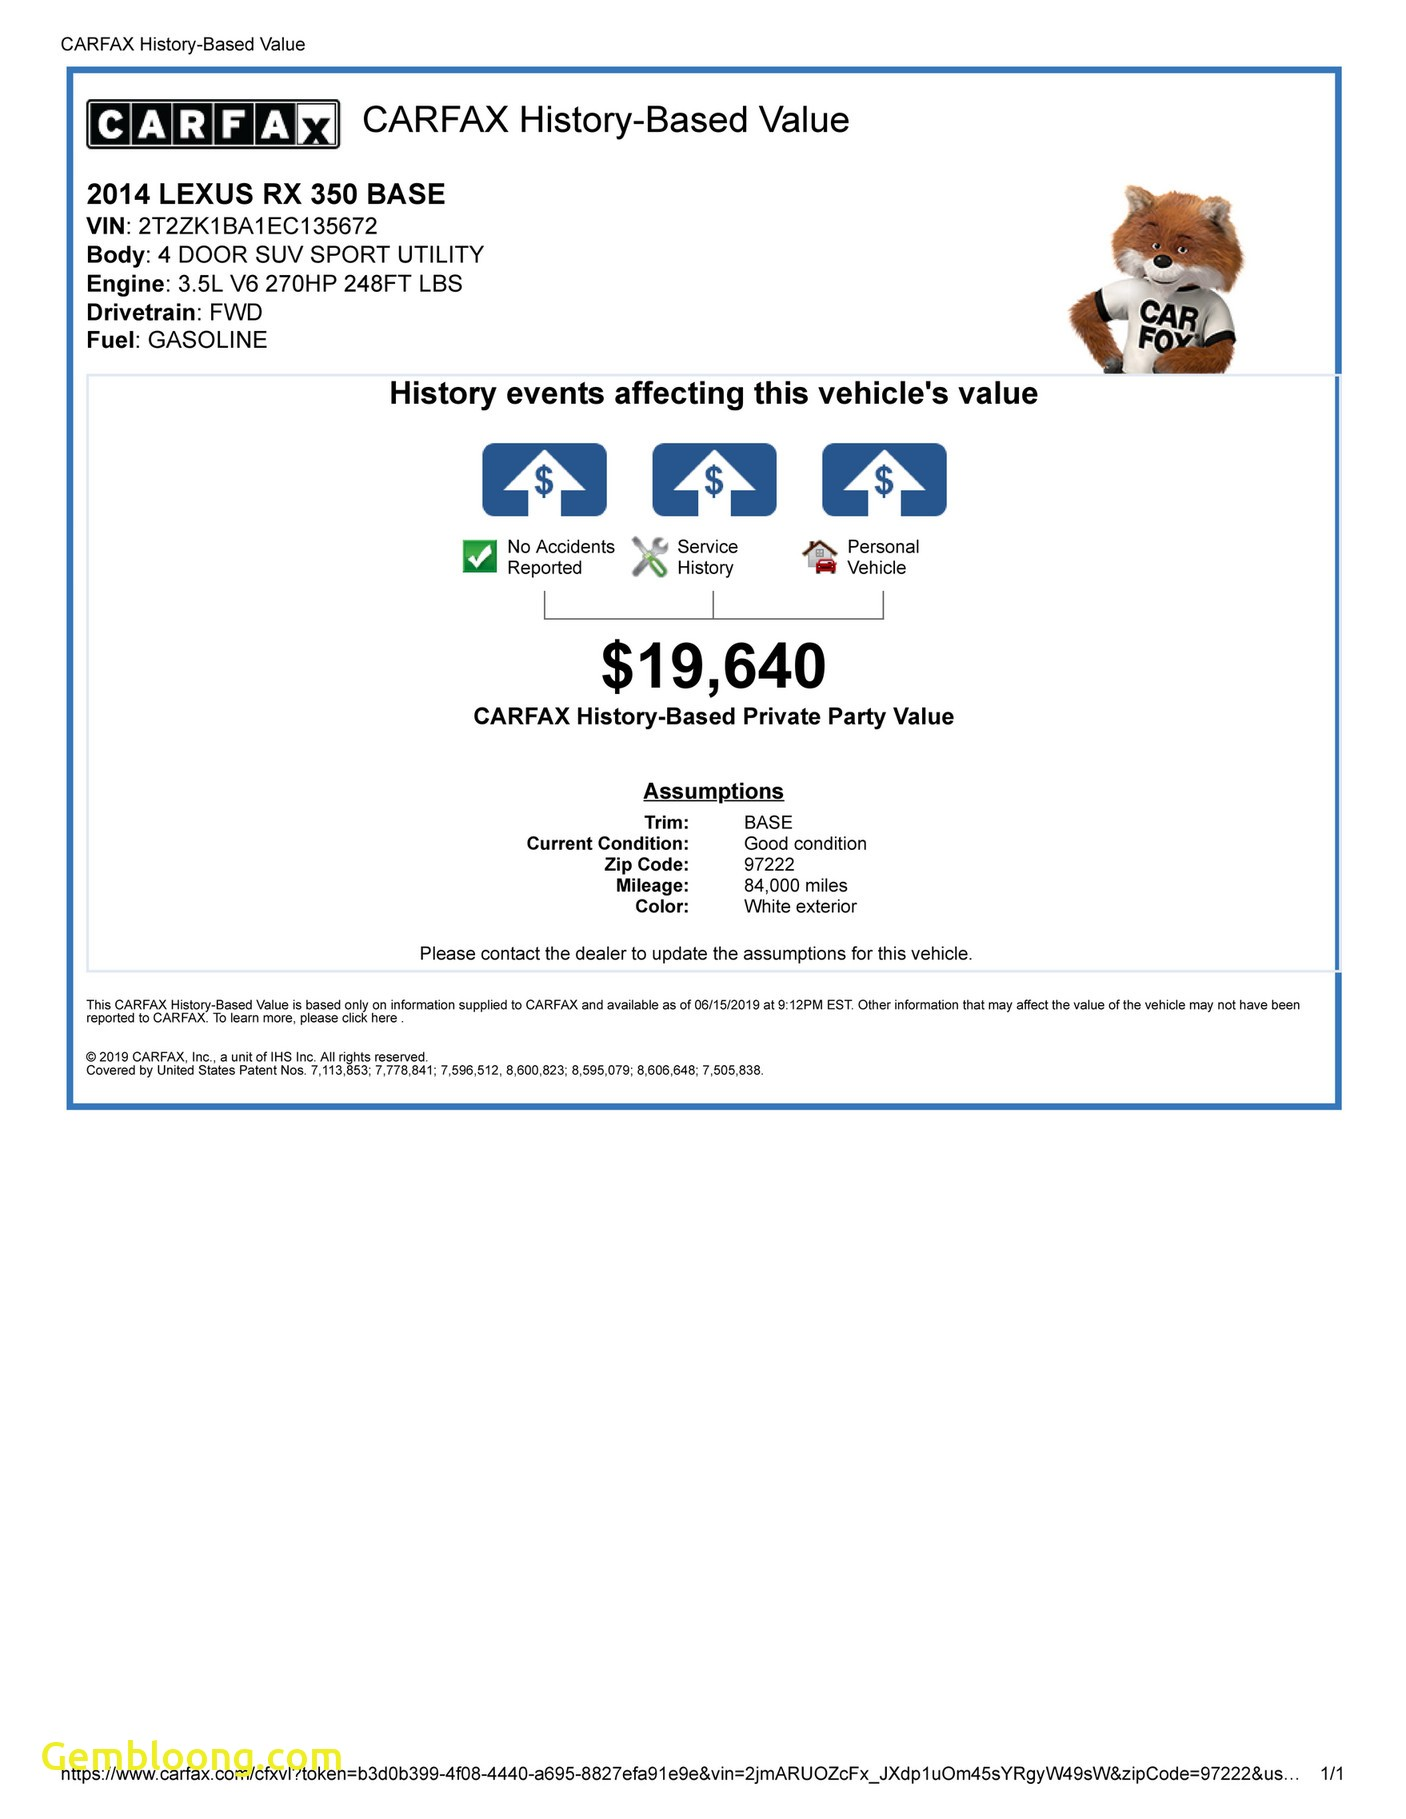 Carfax Accident Report Fresh My Publications Carfax Vehicle History Report for This